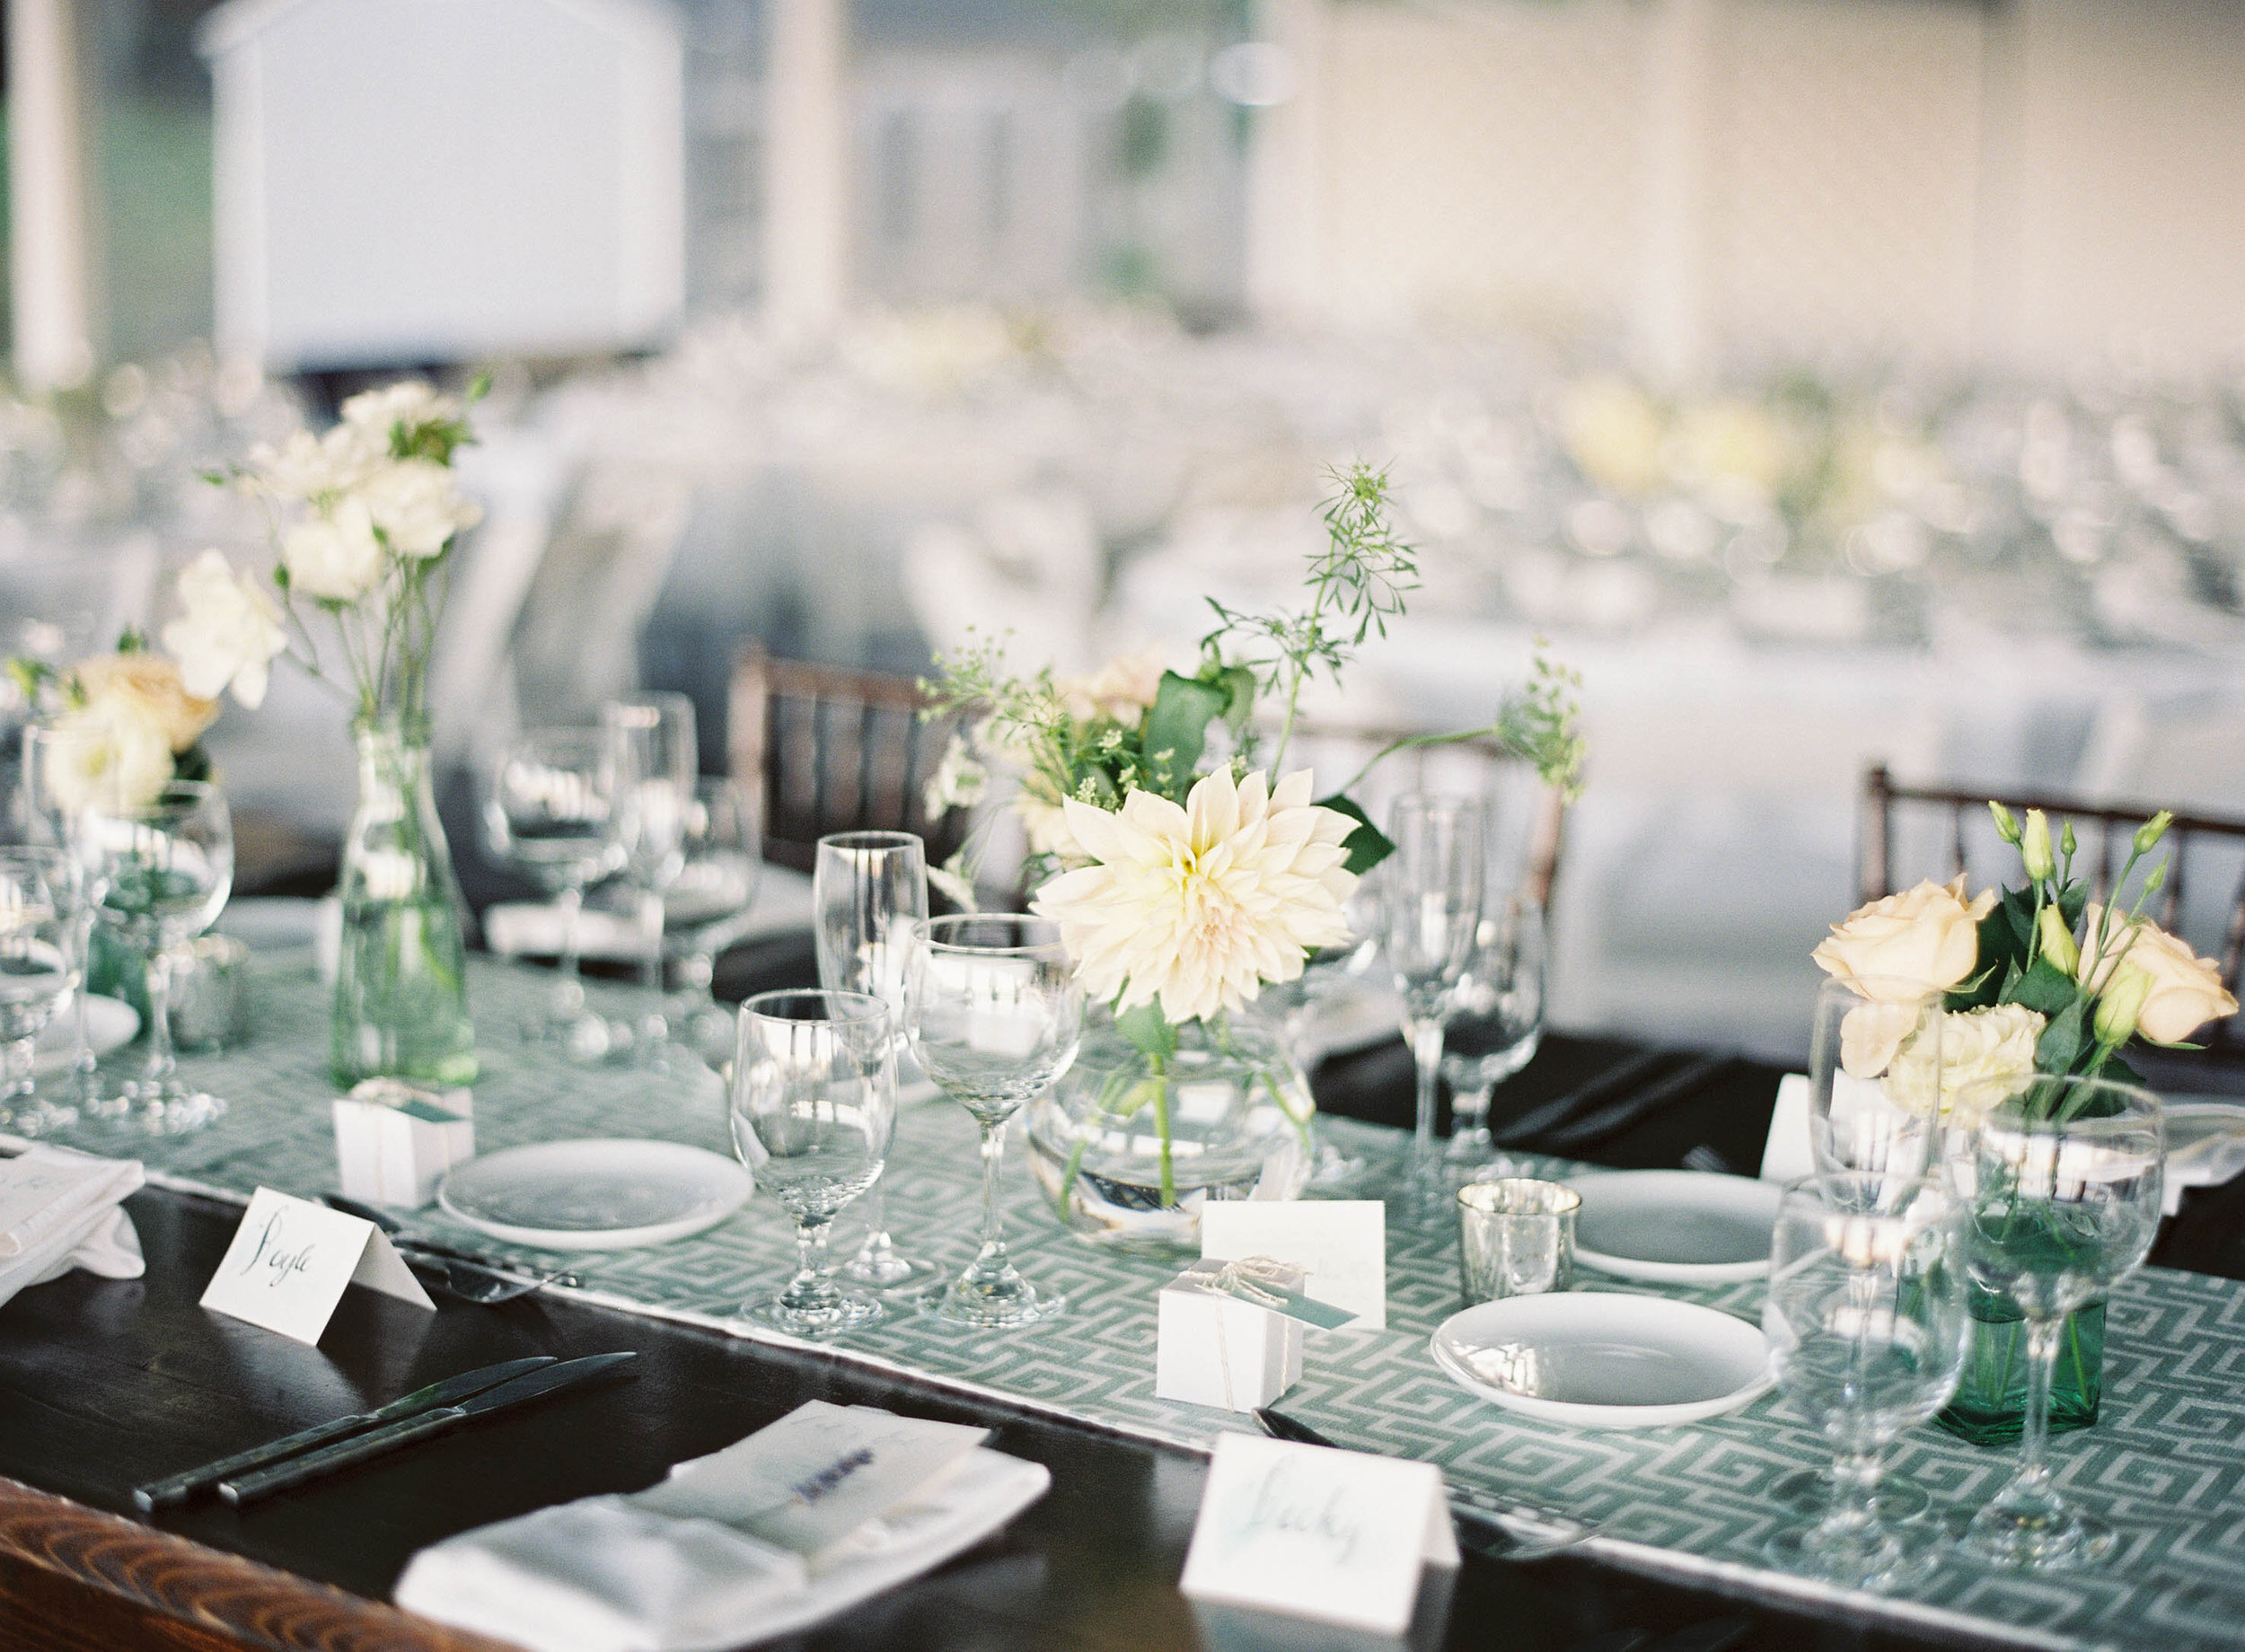 Bud vases with ivory flowers